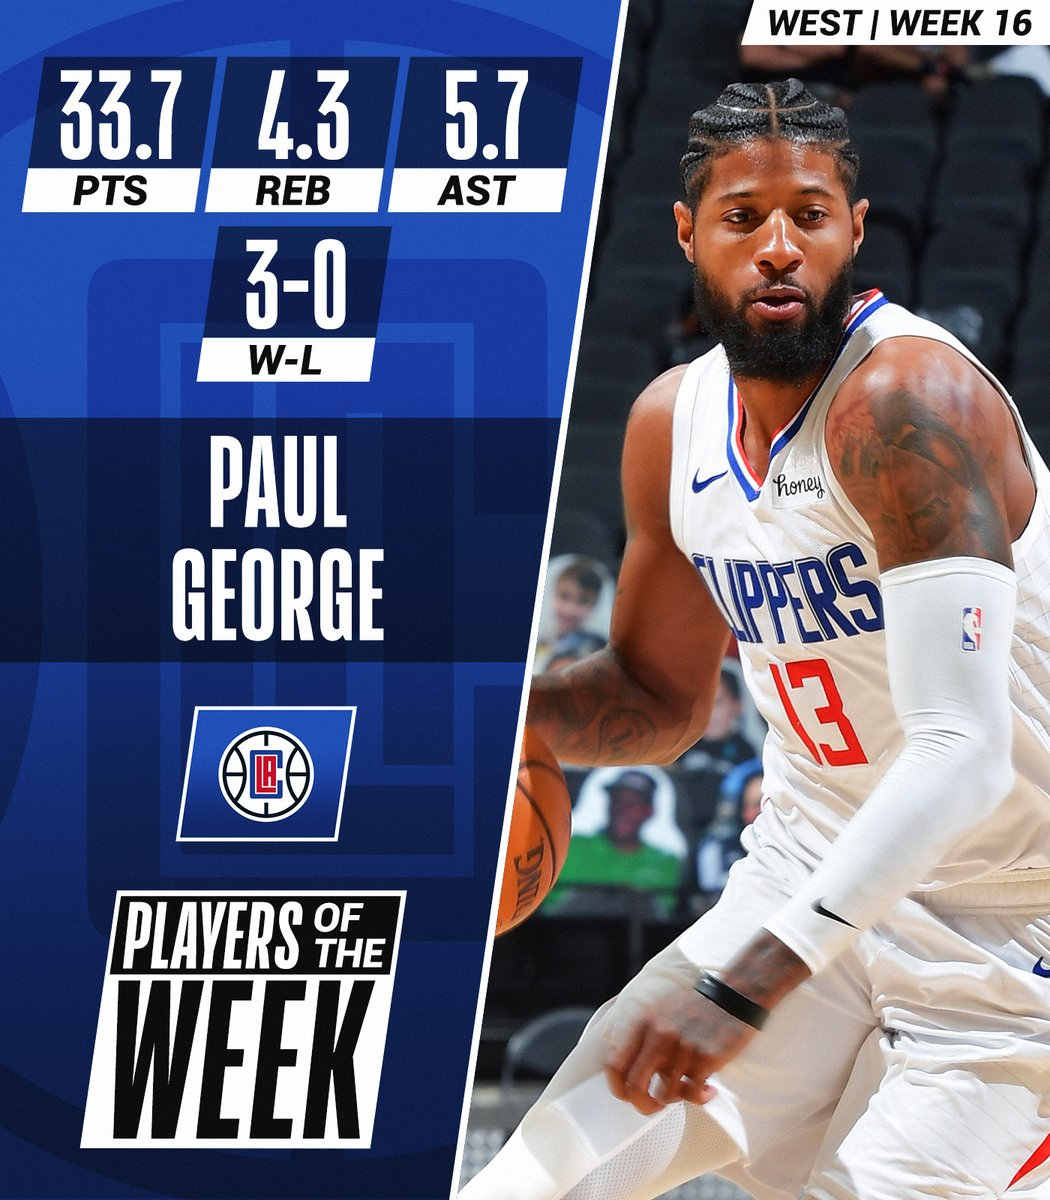 NBA Players of the Week for Week 16.  West: Paul George (@LAClippers) East: Jayson Tatum (@celtics) https://t.co/p27ykP0nUw